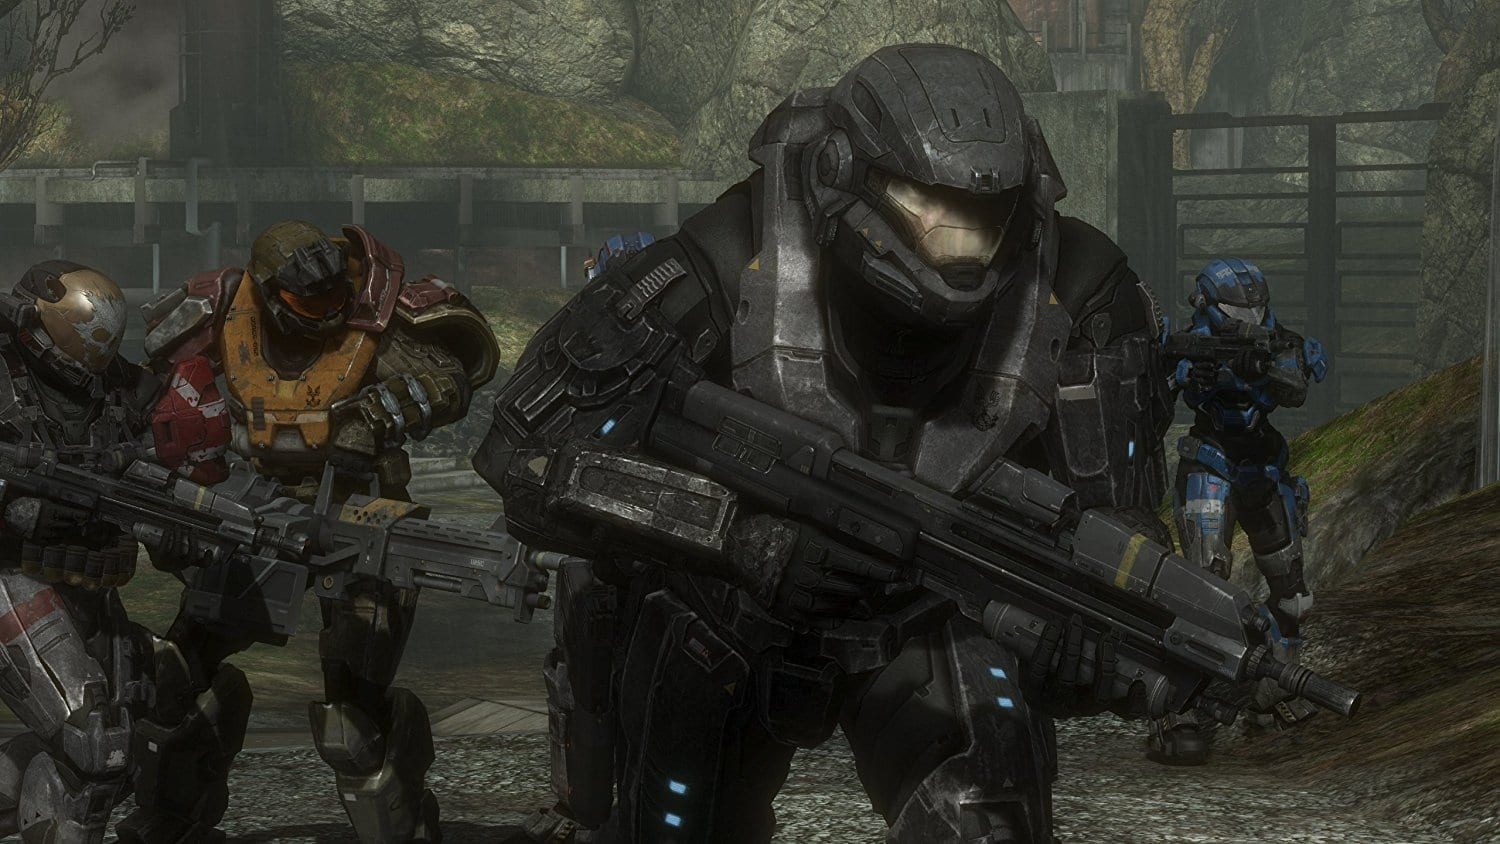 All 13 Halo Games Ranked From Worst To Best | Gamebyte